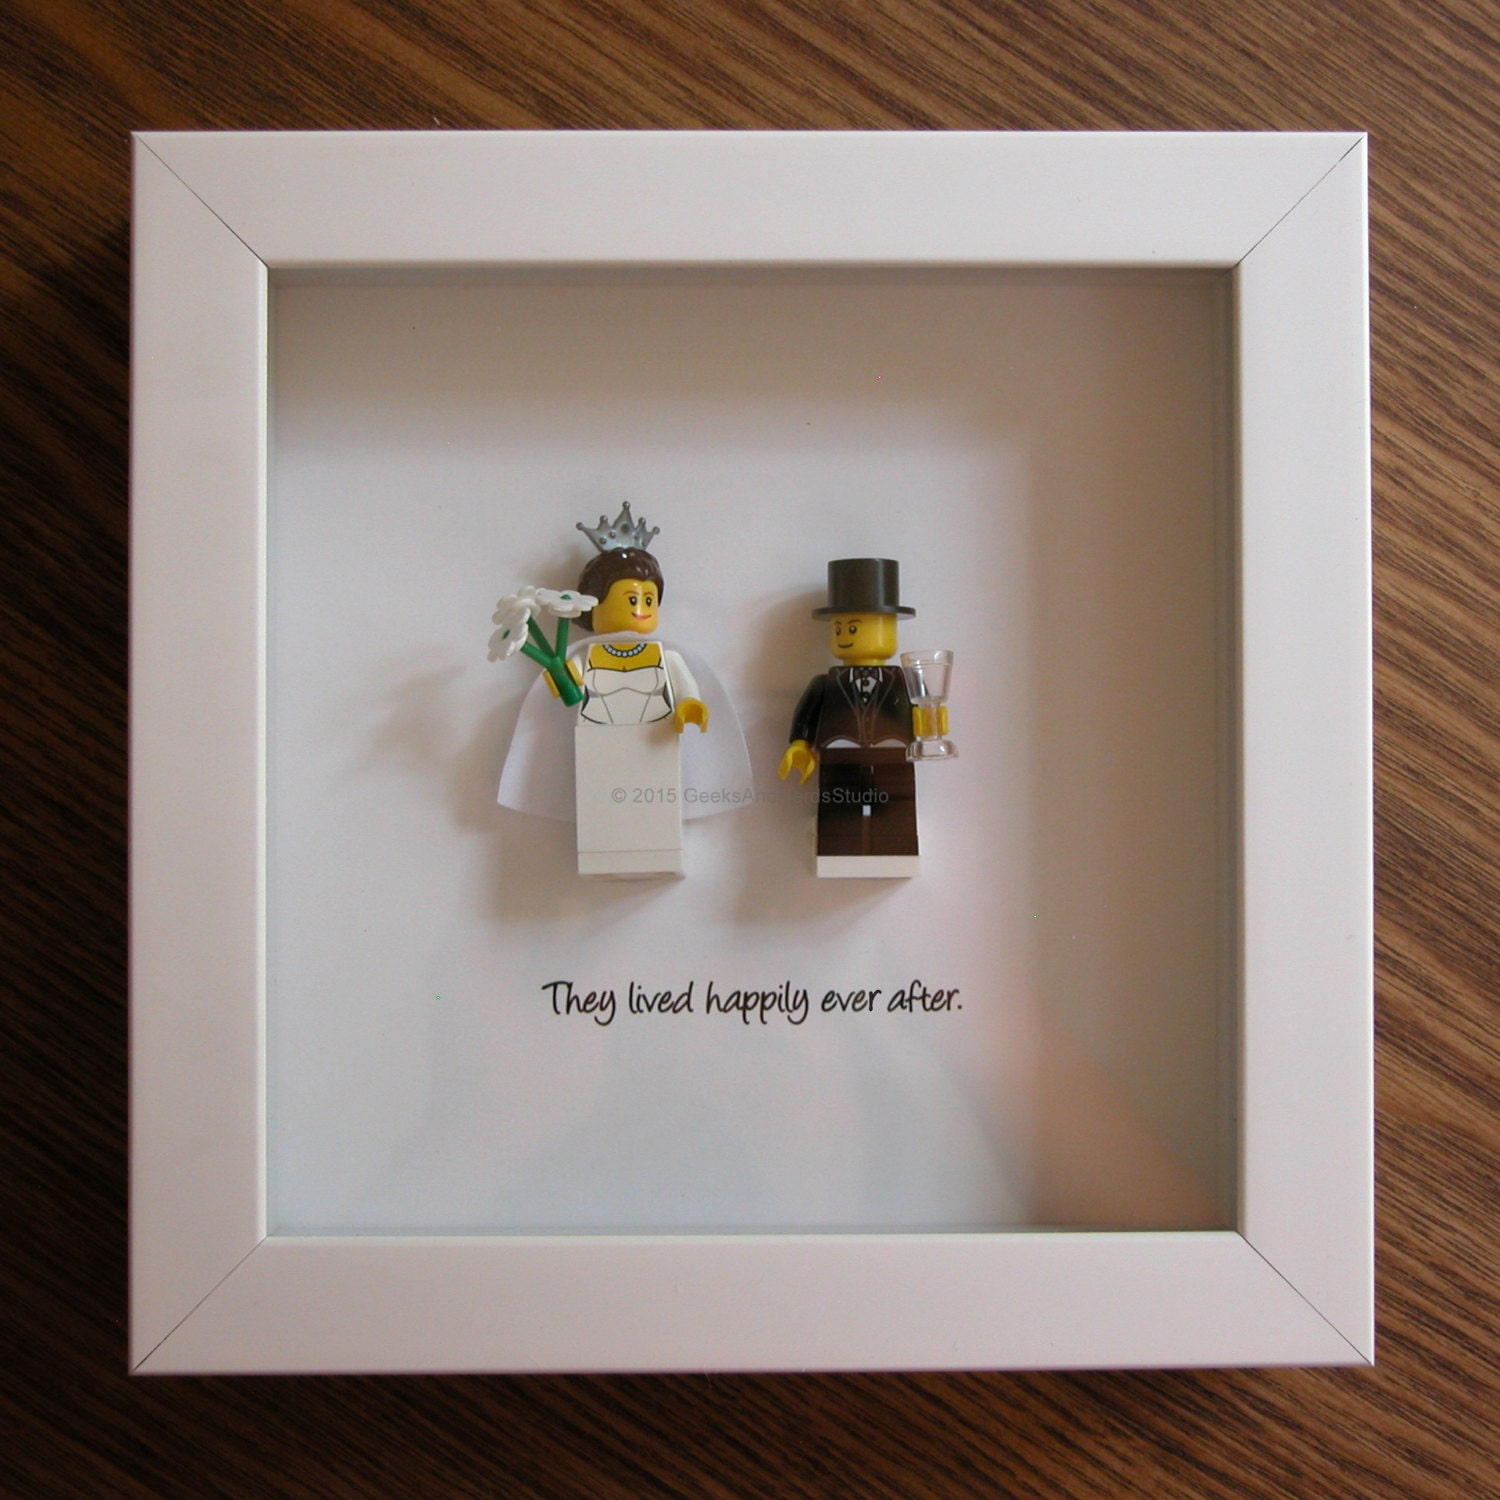 Wedding reception centerpieces with picture frames wedding daze august wedding centerpiece lego art frame bride groom junglespirit Choice Image